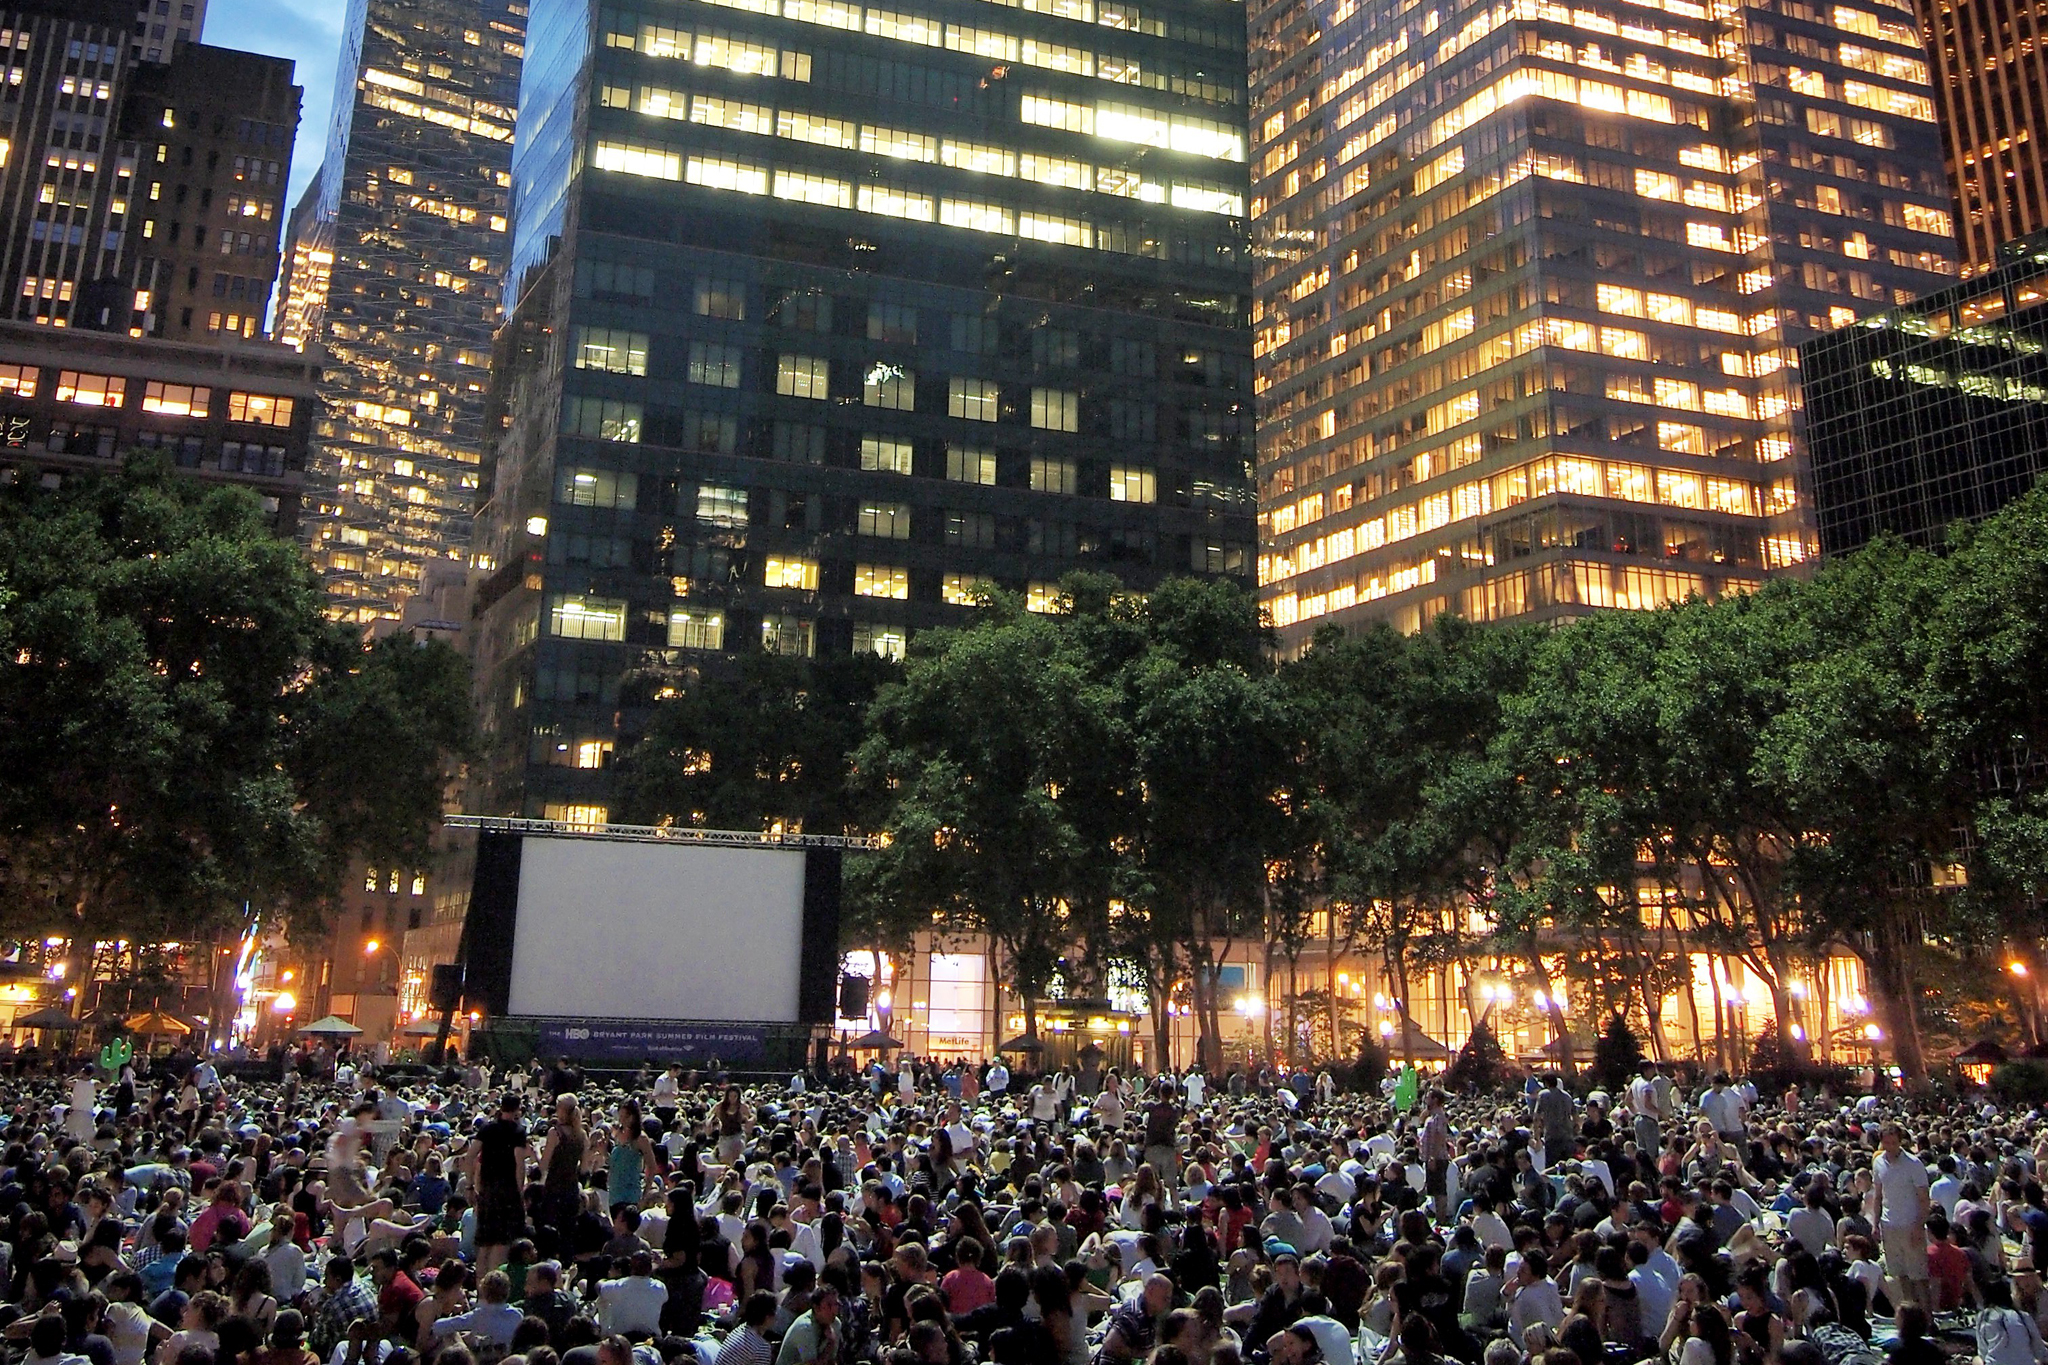 Stake out a spot at Bryant Park's film fest